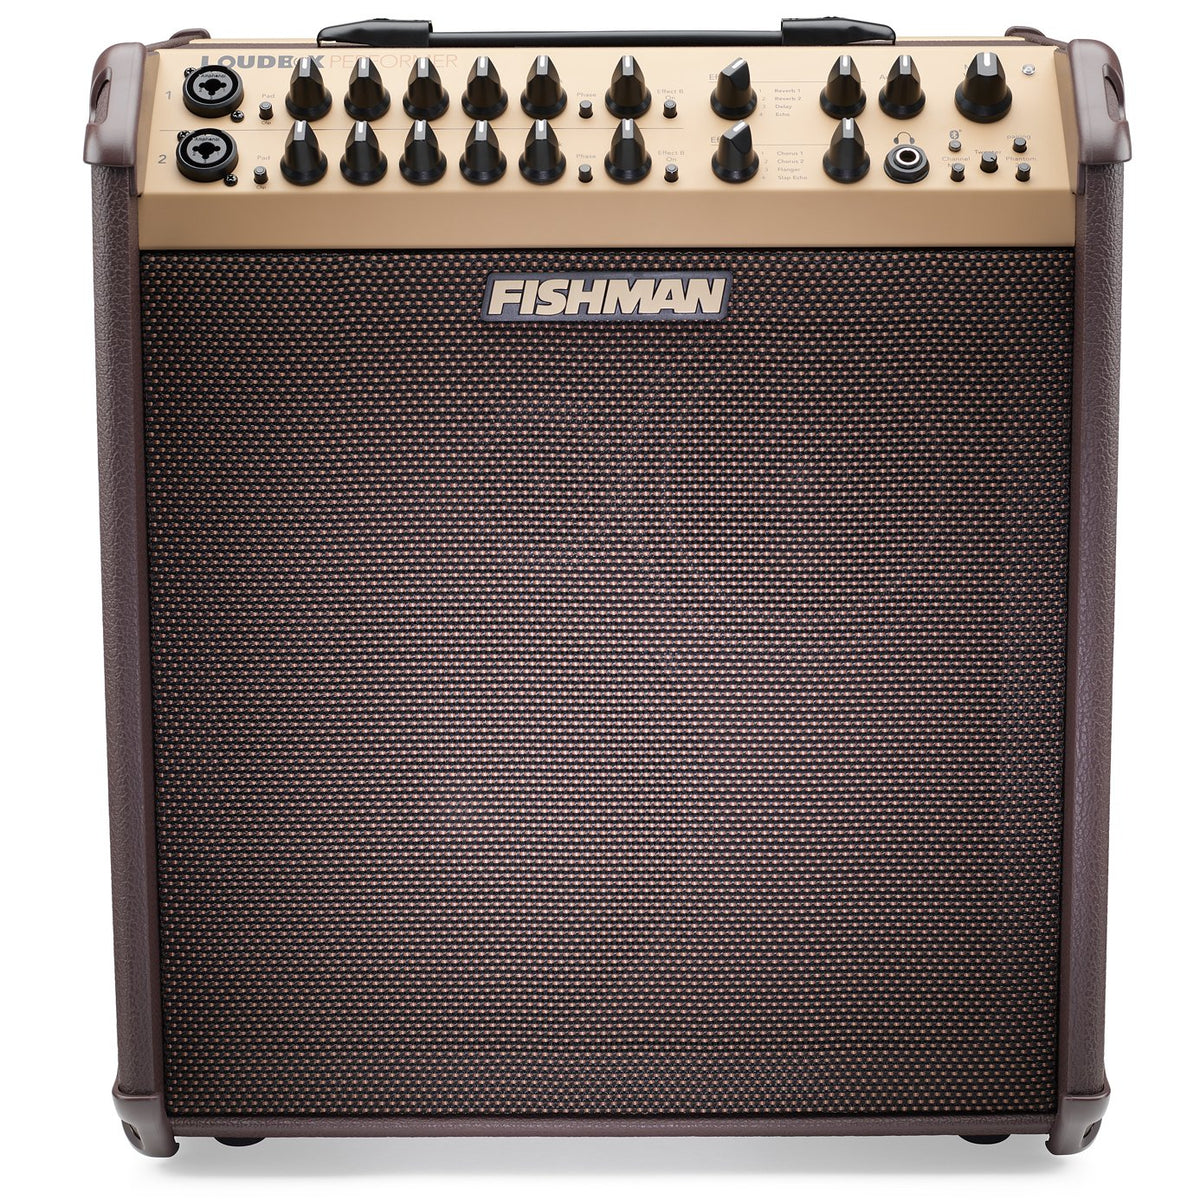 Fishman Loudbox Performer Bluetooth Acoustic Guitar Amplifier (180 Watts, 1x8 Inch)